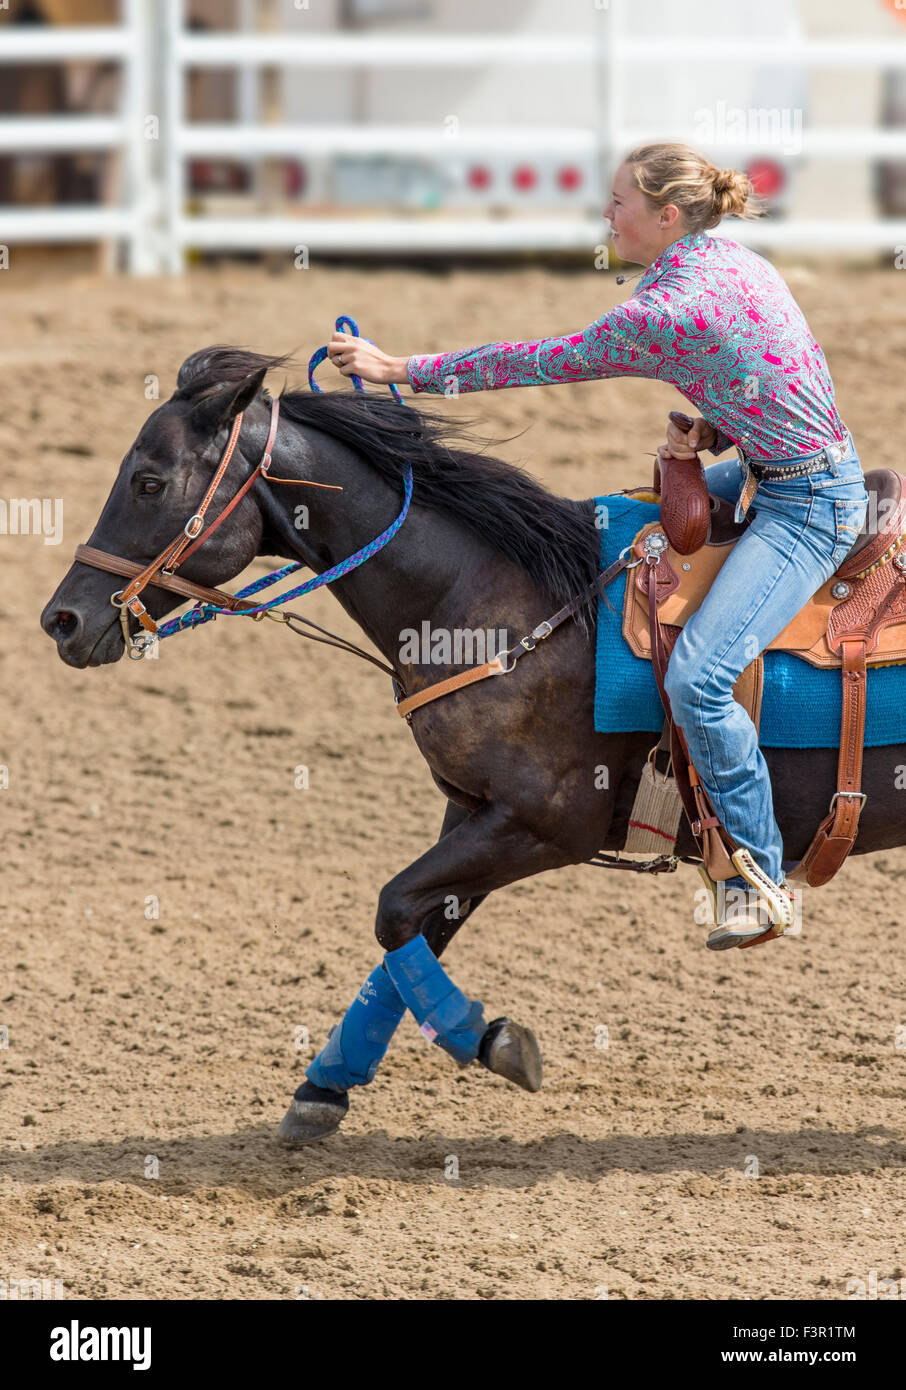 Rodeo cowgirl on horseback competing in barrel racing event, Chaffee County Fair & Rodeo, Salida, Colorado, - Stock Image